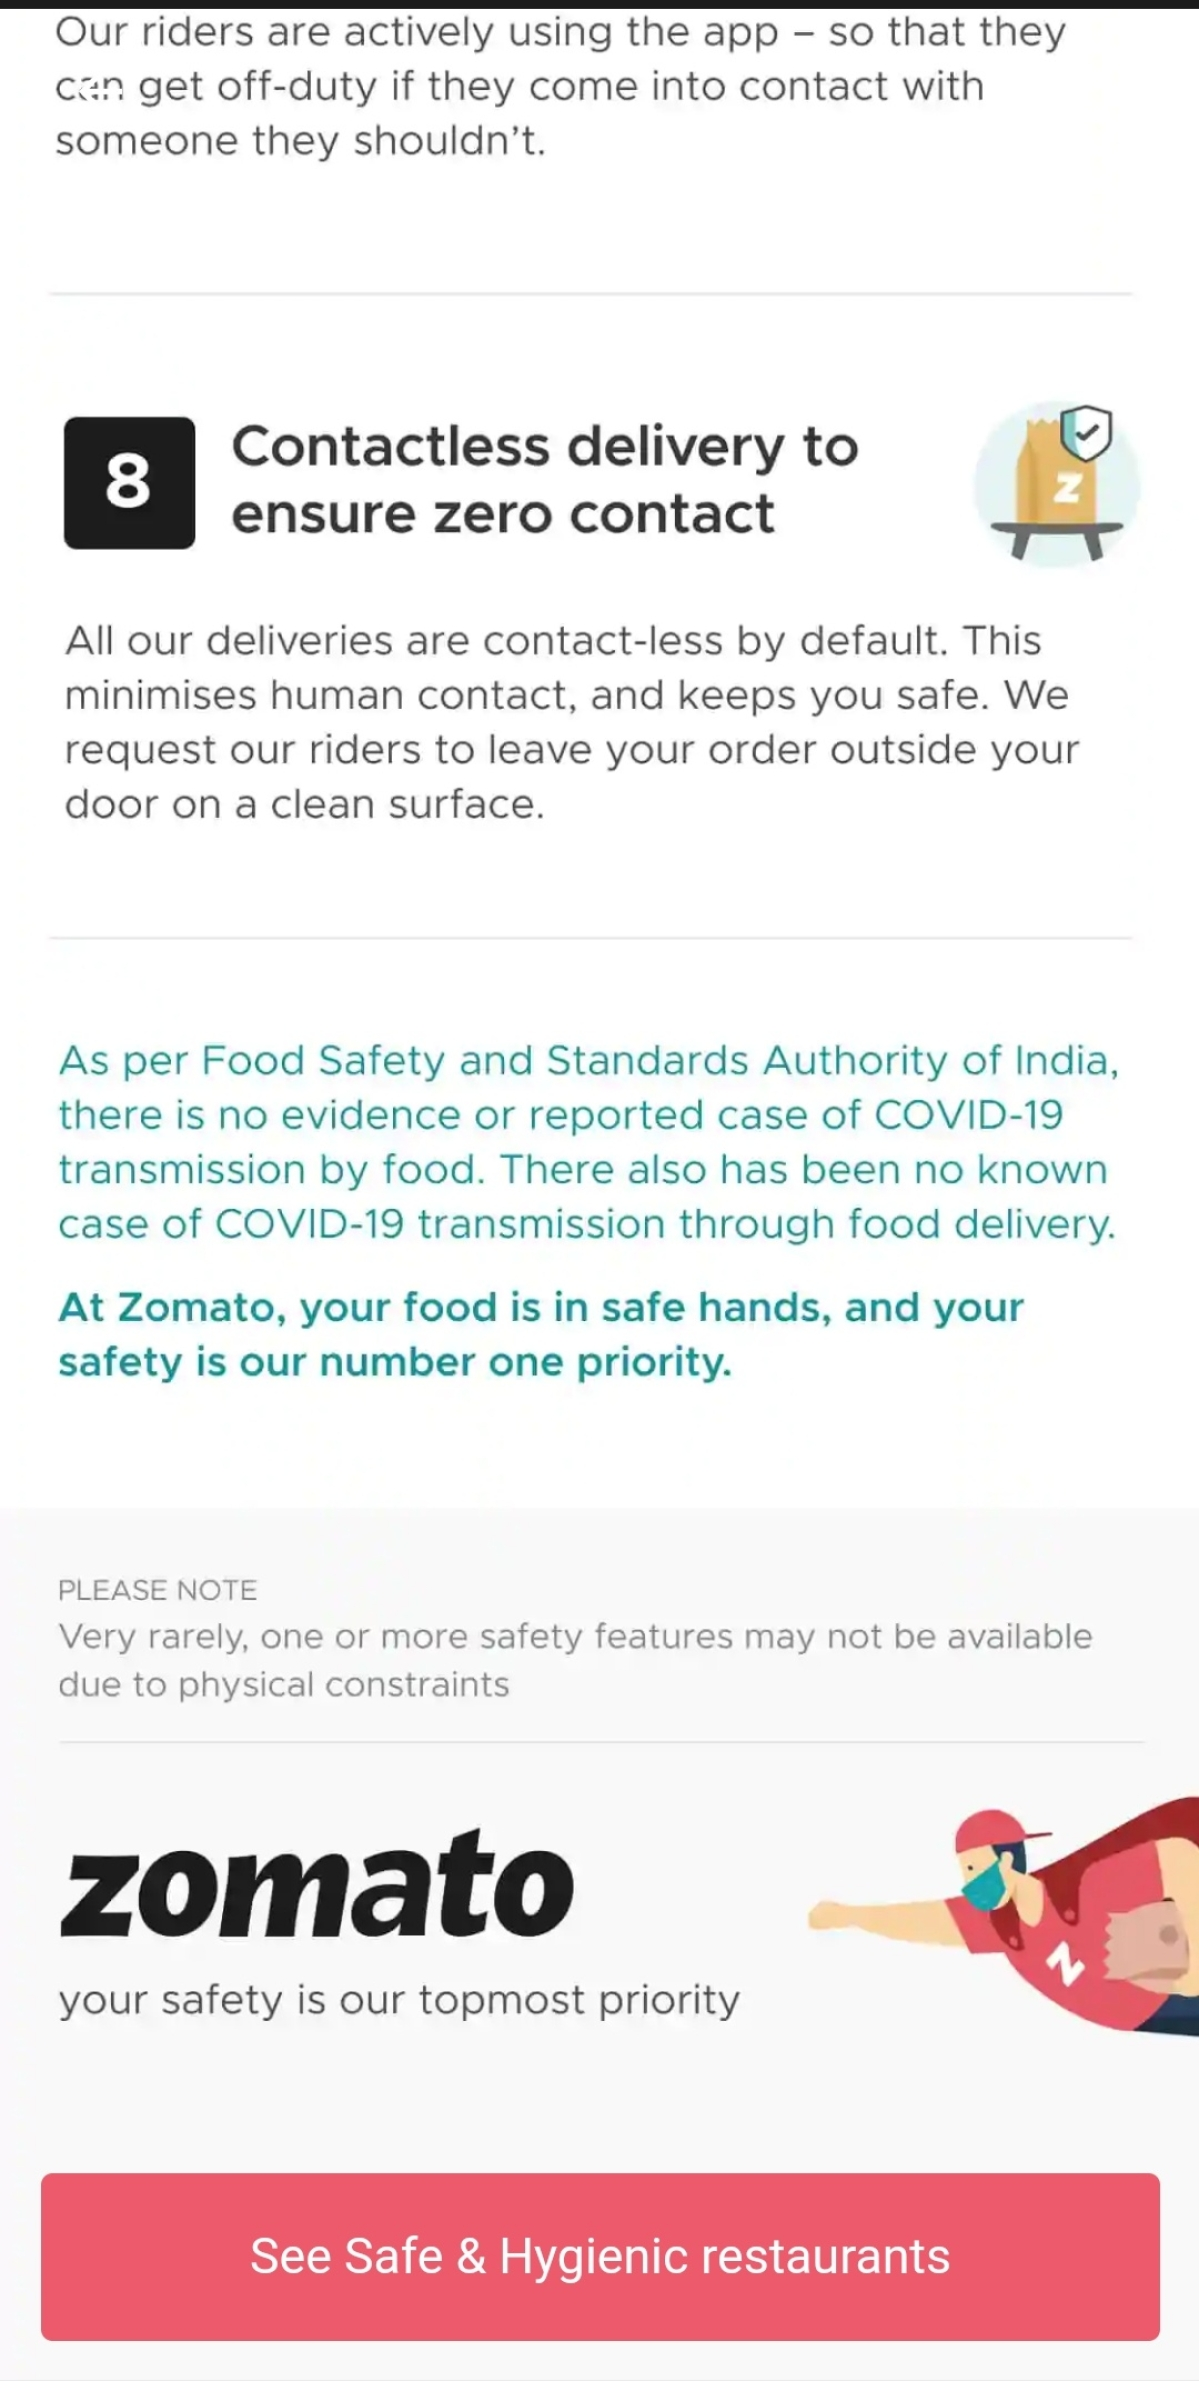 Zomato's ad makes a case for 'safety' while ordering in